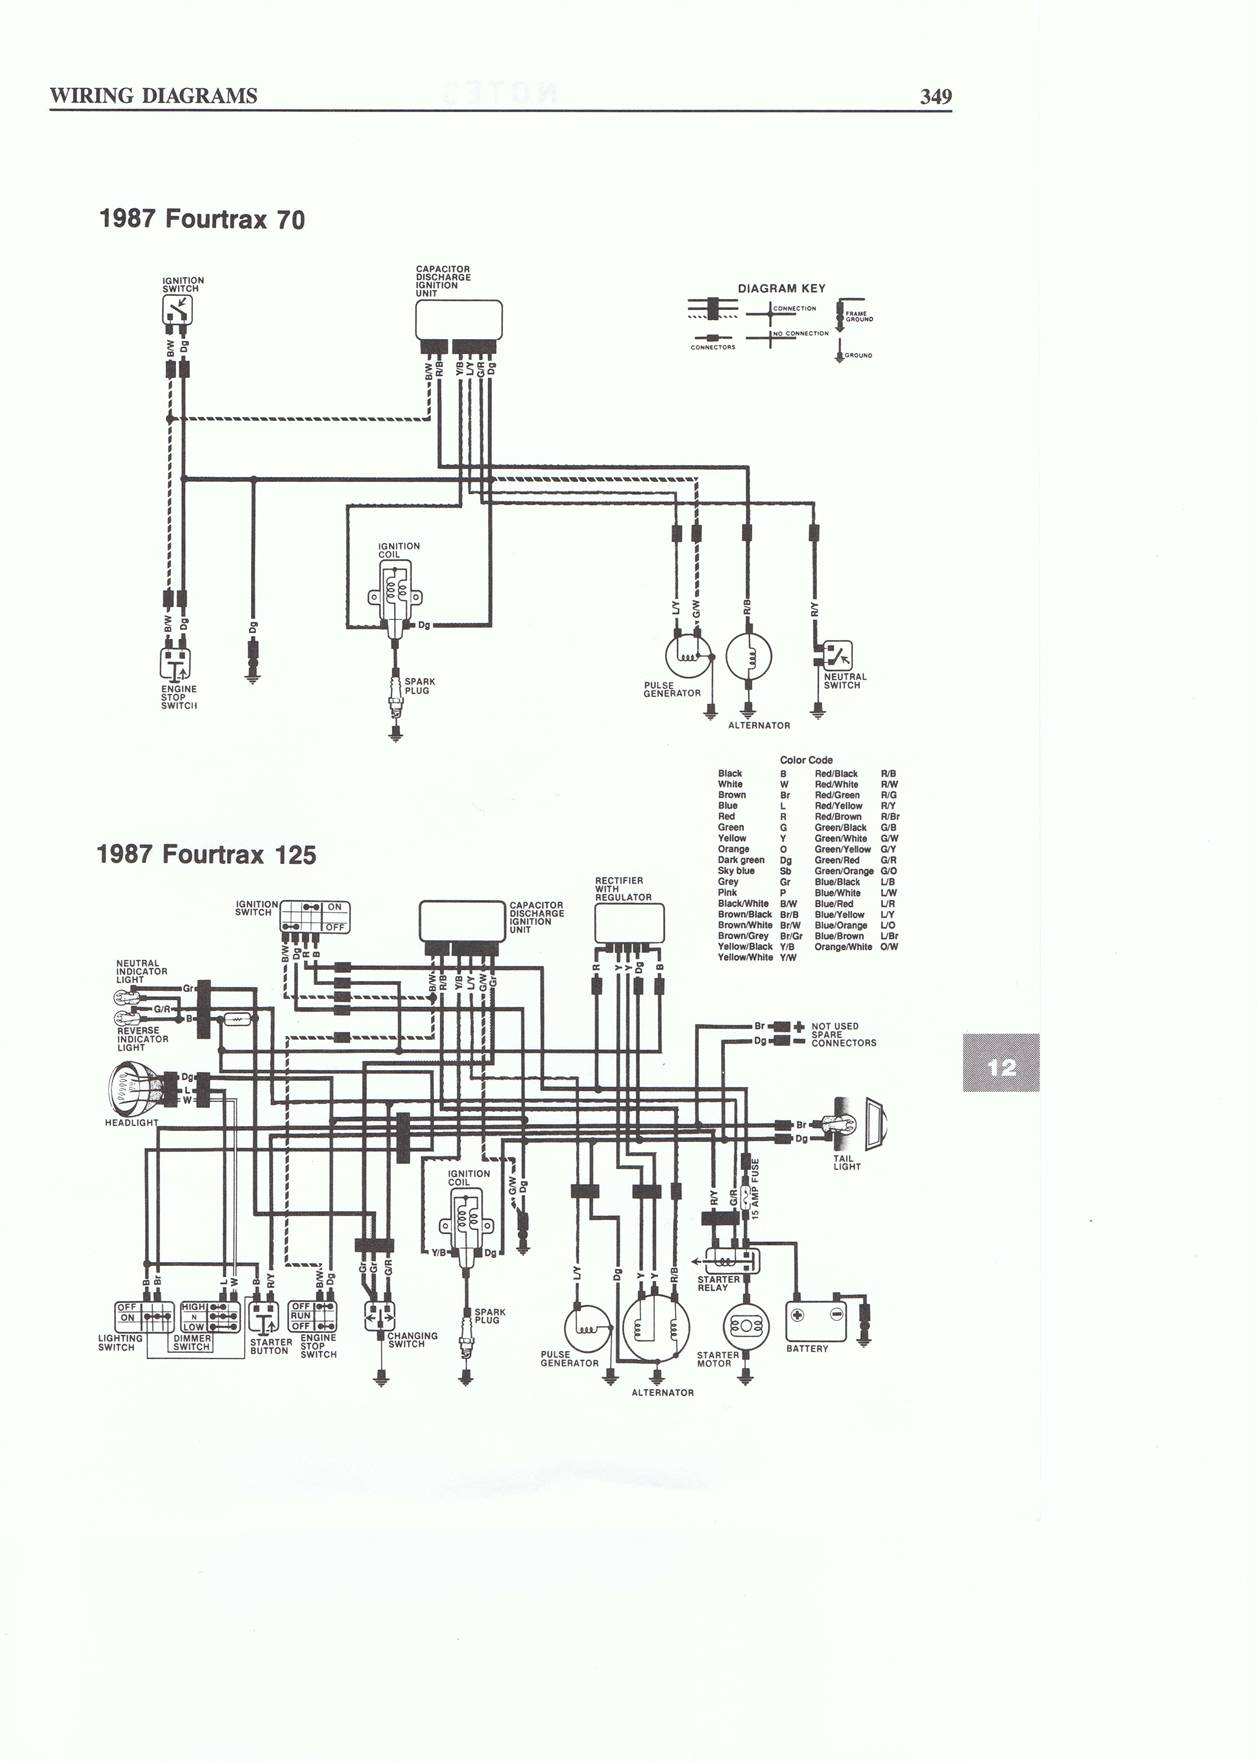 gy6 engine wiring diagram?t=1398725710 gy6 engine wiring diagram gy6 wiring harness diagram at bayanpartner.co